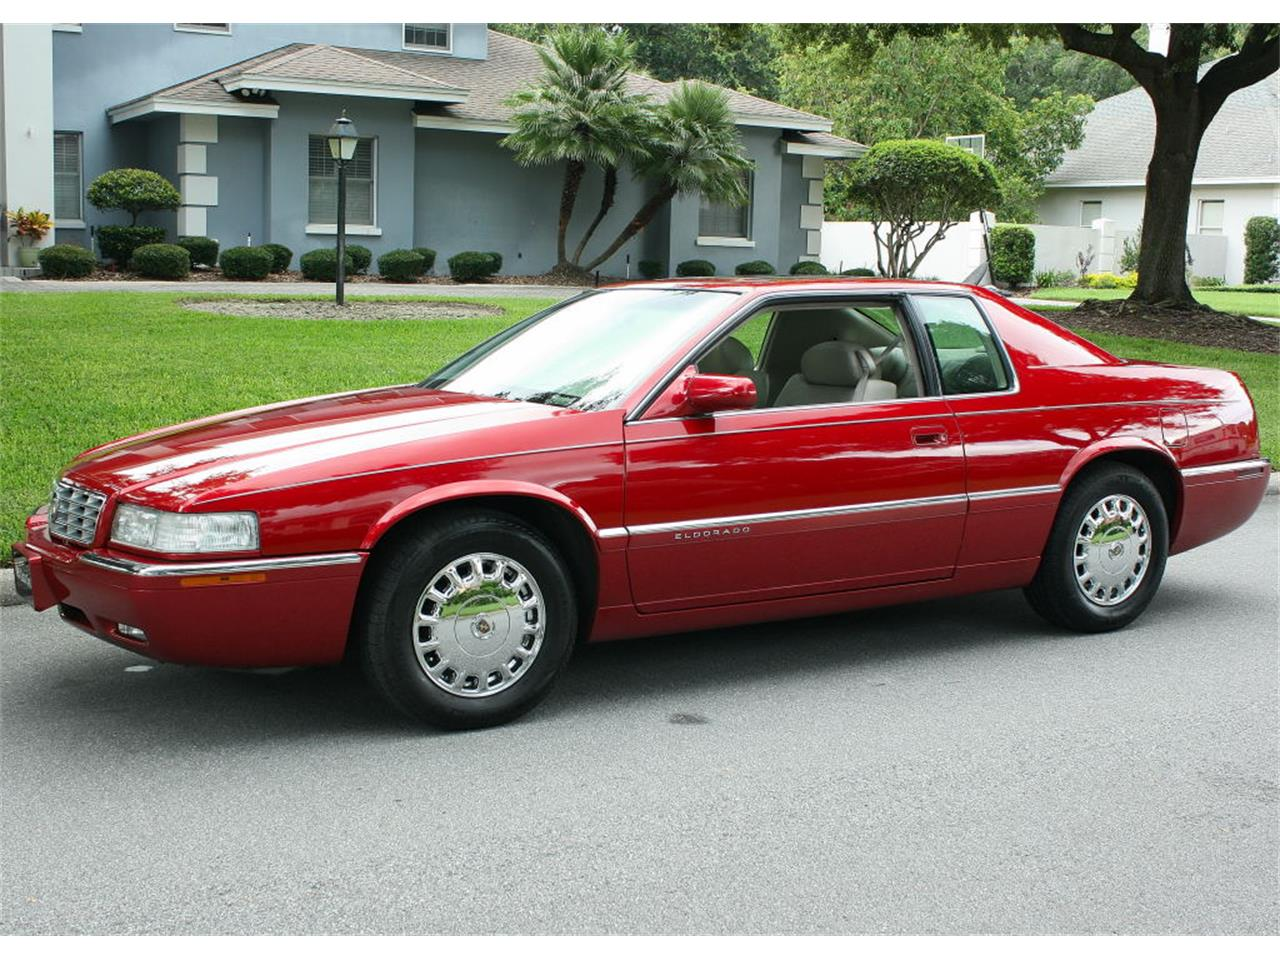 1995 cadillac eldorado for sale classiccars com cc 1003431 1995 cadillac eldorado for sale